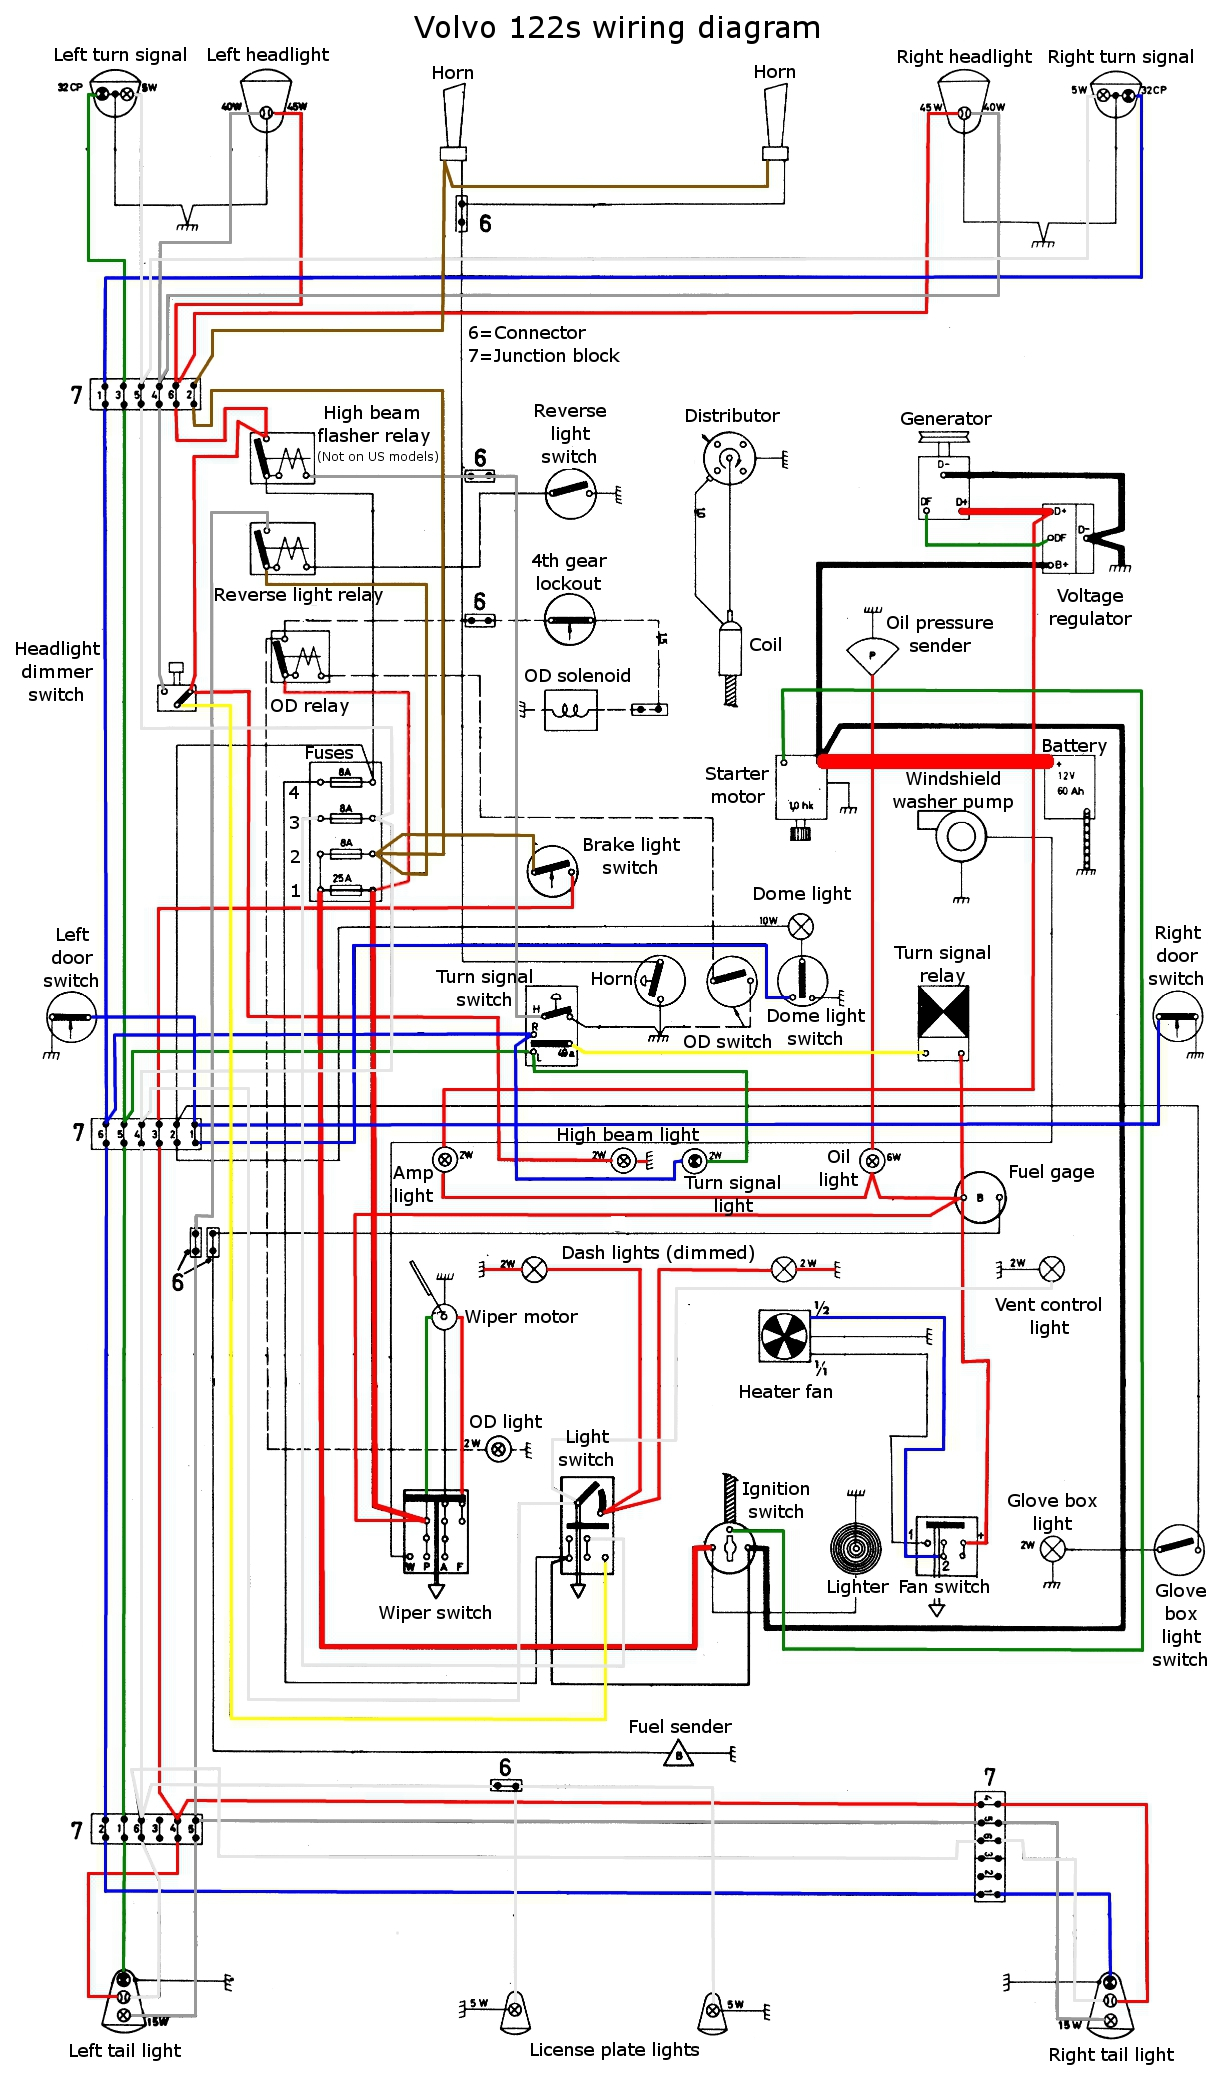 122 wiring diagram color wiring gremlins volvo xc70 wiring diagram at highcare.asia